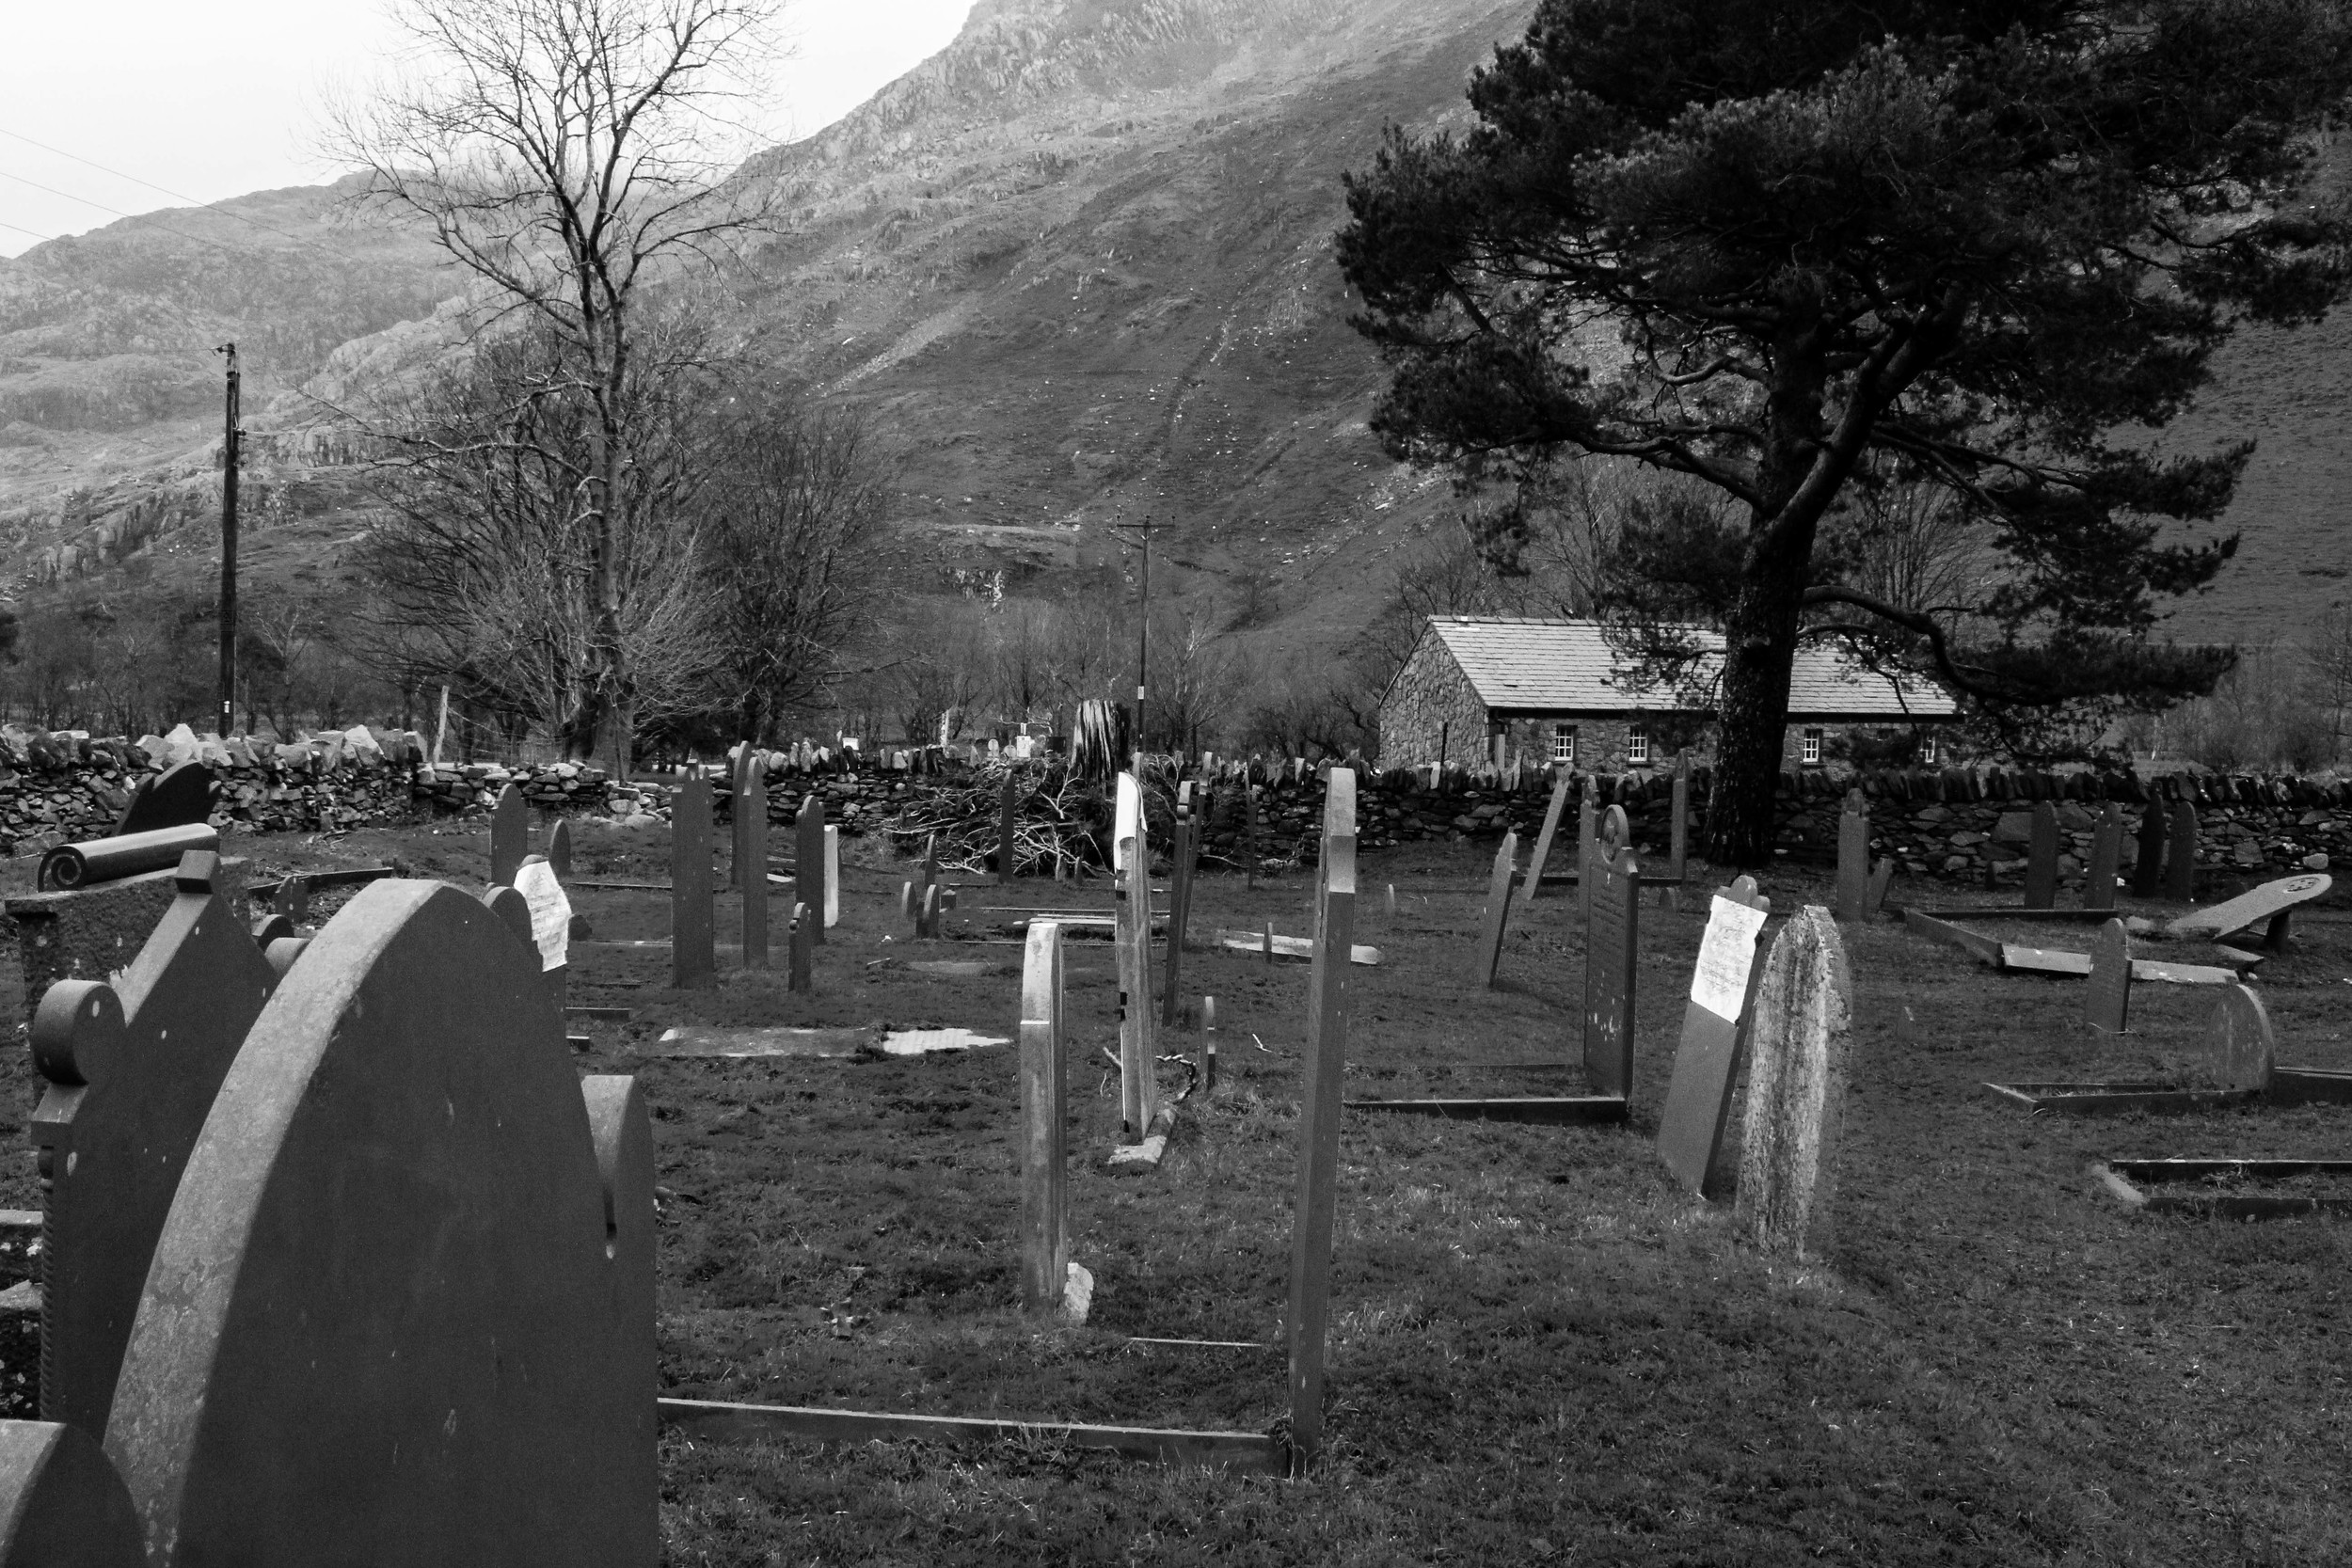 The Williams' family graves: Griffith (jr), Owen, Ellen and Robert. All in a line in the South East corner of Nantperis Graveyard. Facing their home, Coed Gwydr.